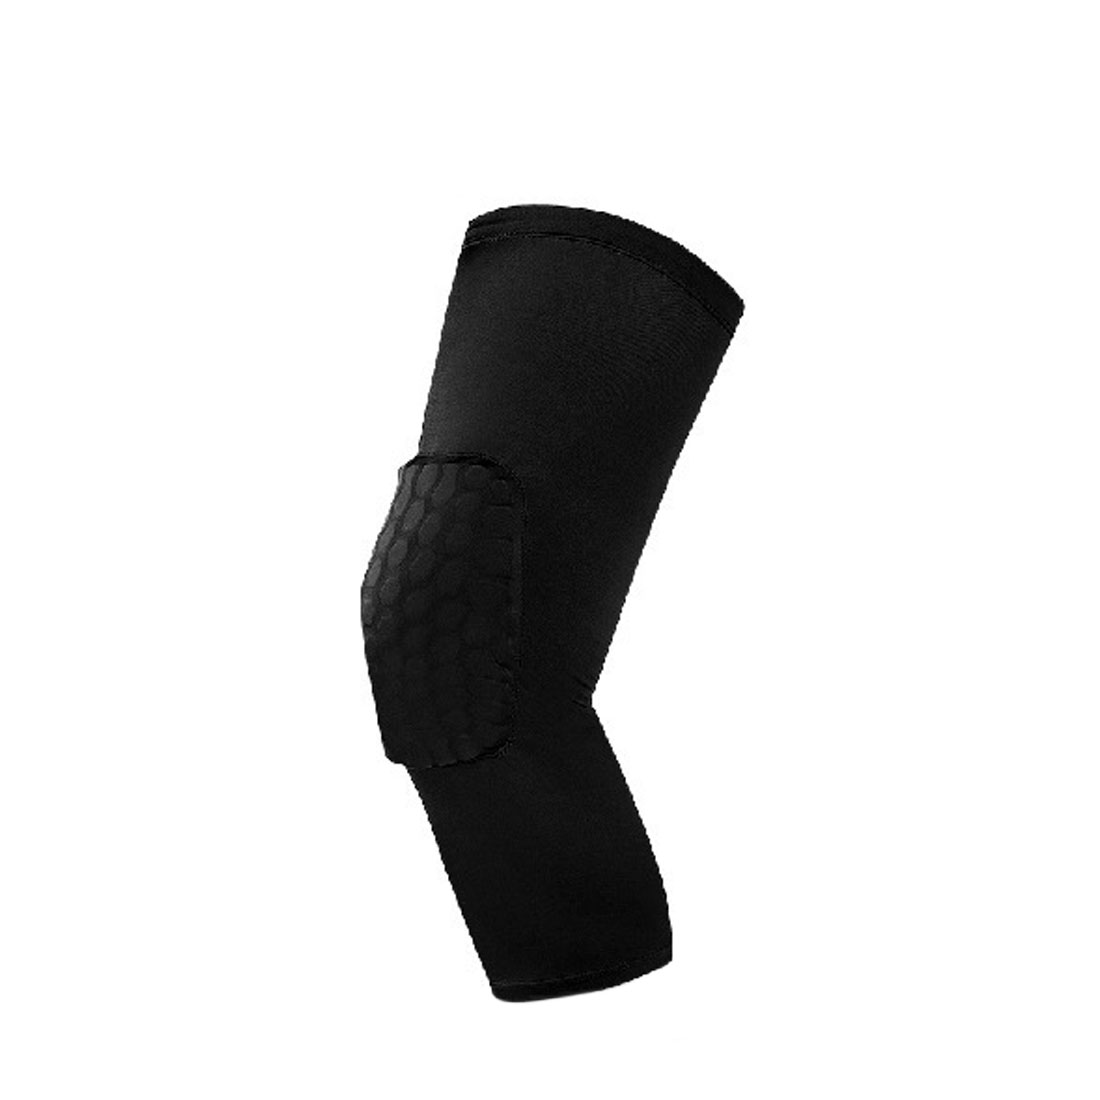 Black L Size Basketball Honeycomb Pad Leg Knee Long Sleeves Support Protector Brace Wrap Guard